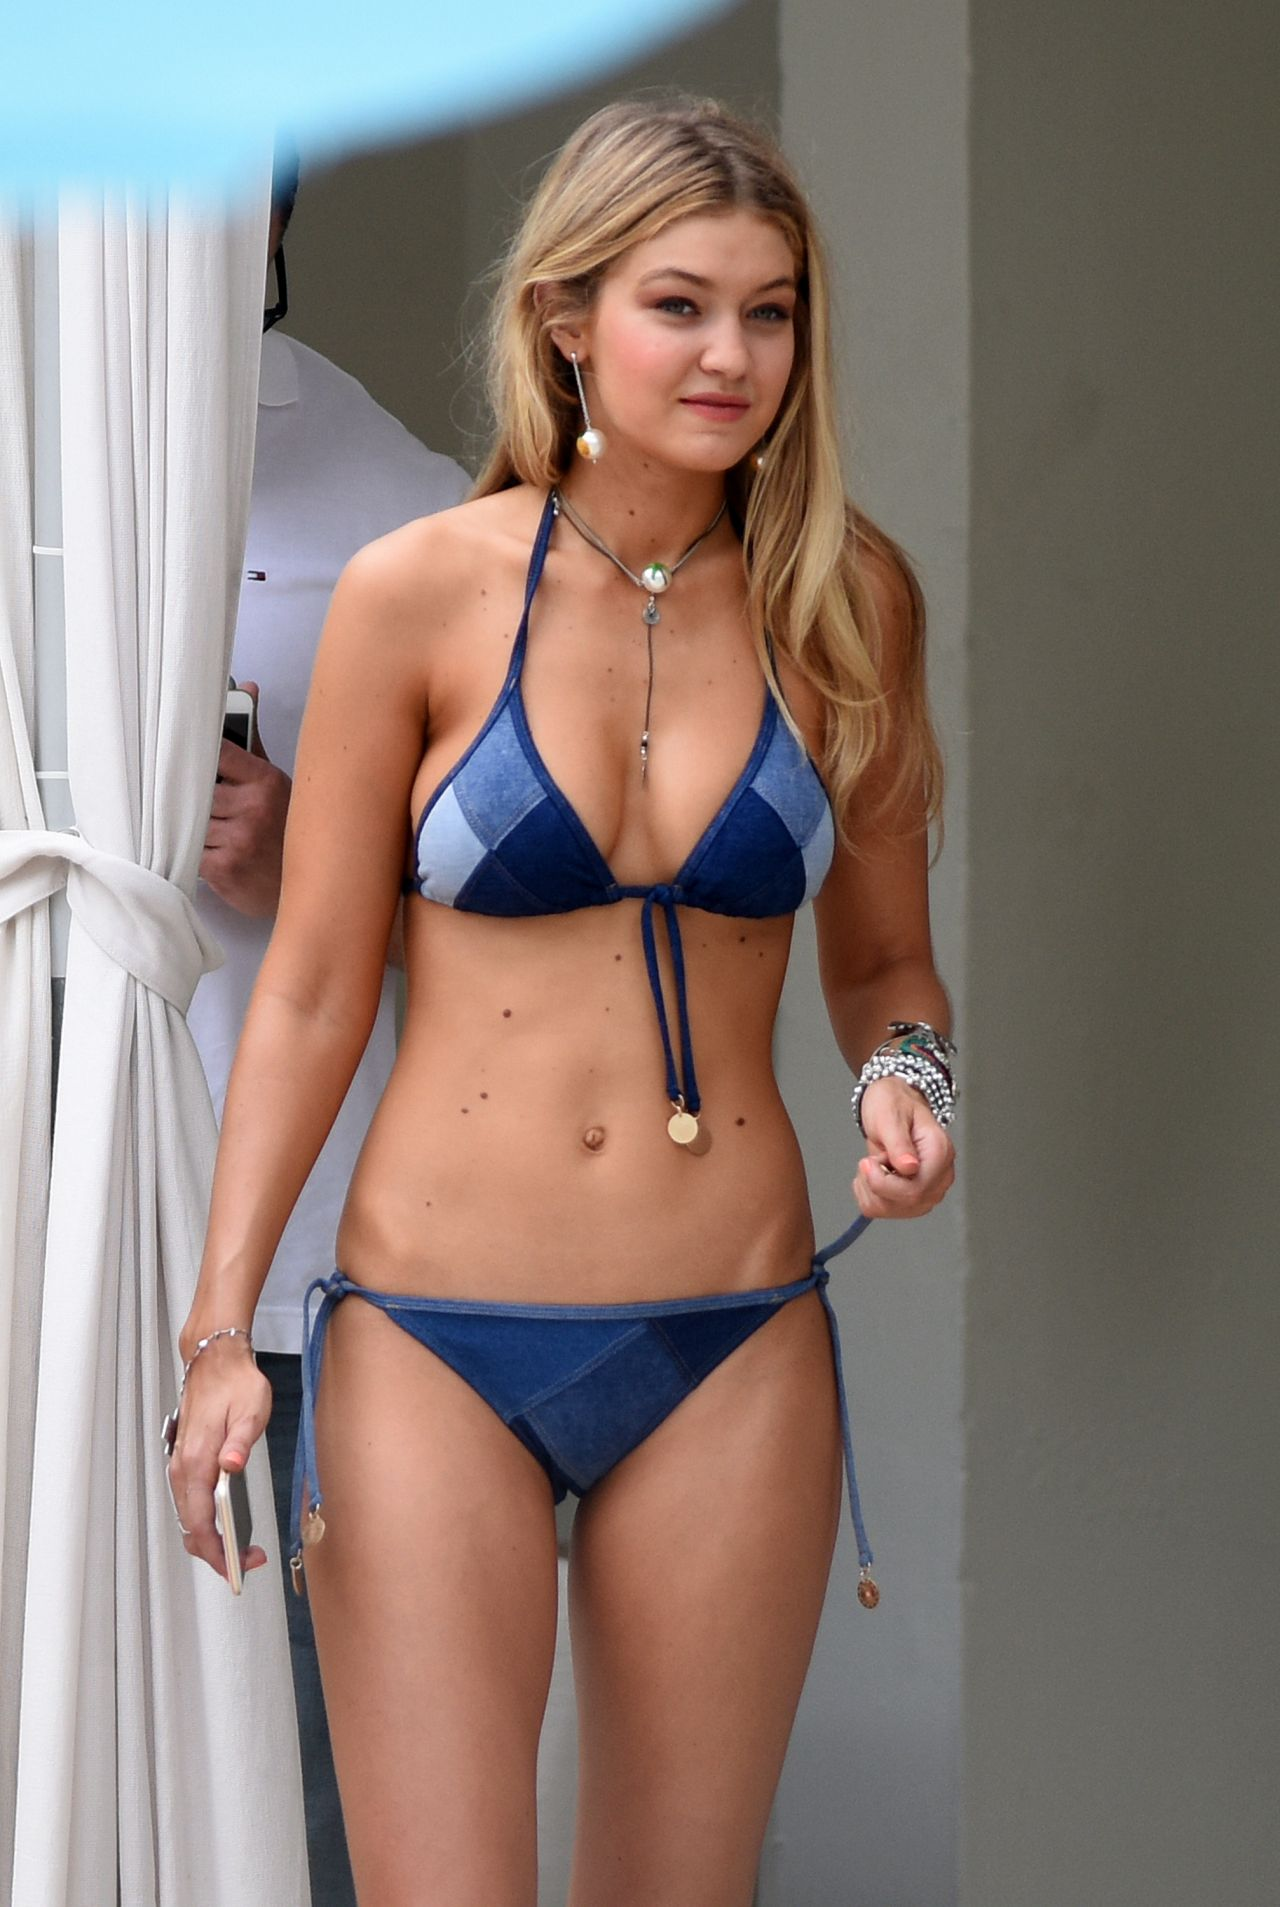 Gigi Hadid Bikini Amp Swimsuit Photoshoot In Miami April 2015